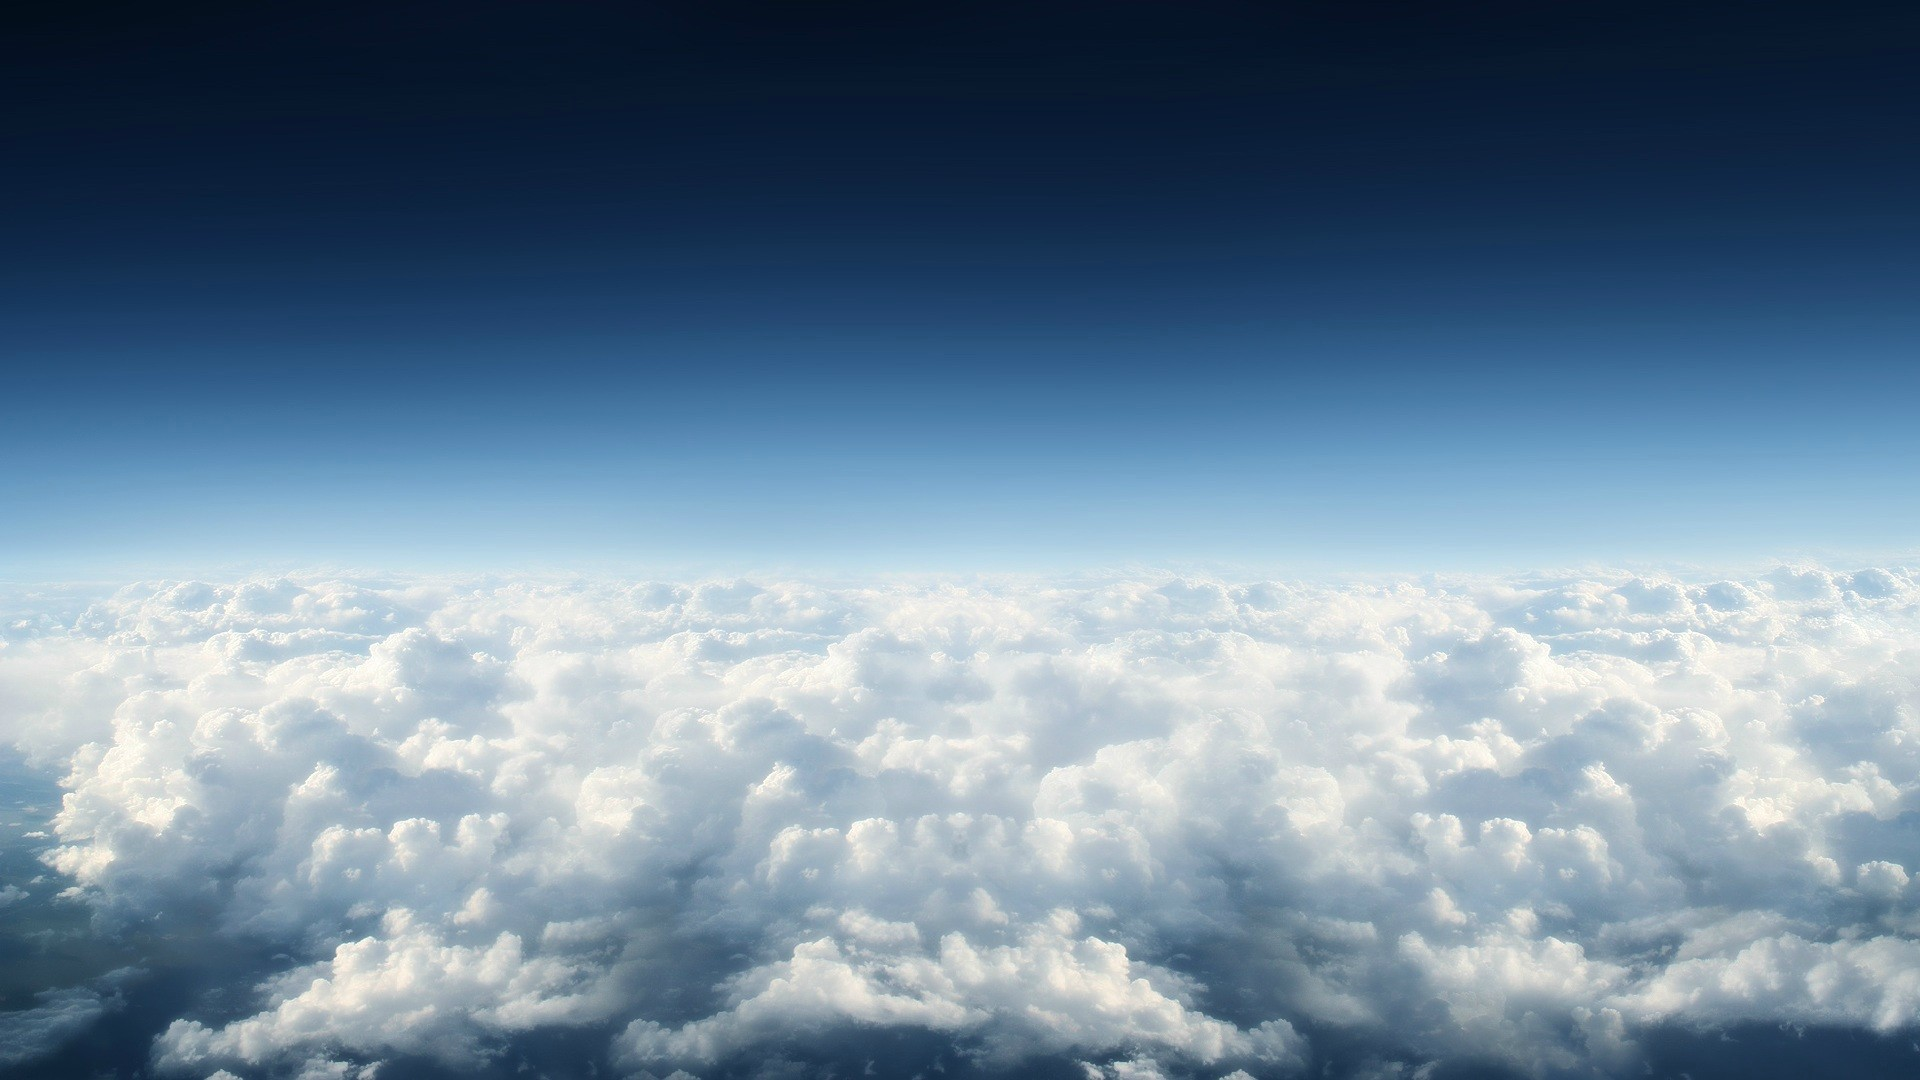 Wallpapers For Beautiful Cloud Backgrounds HD